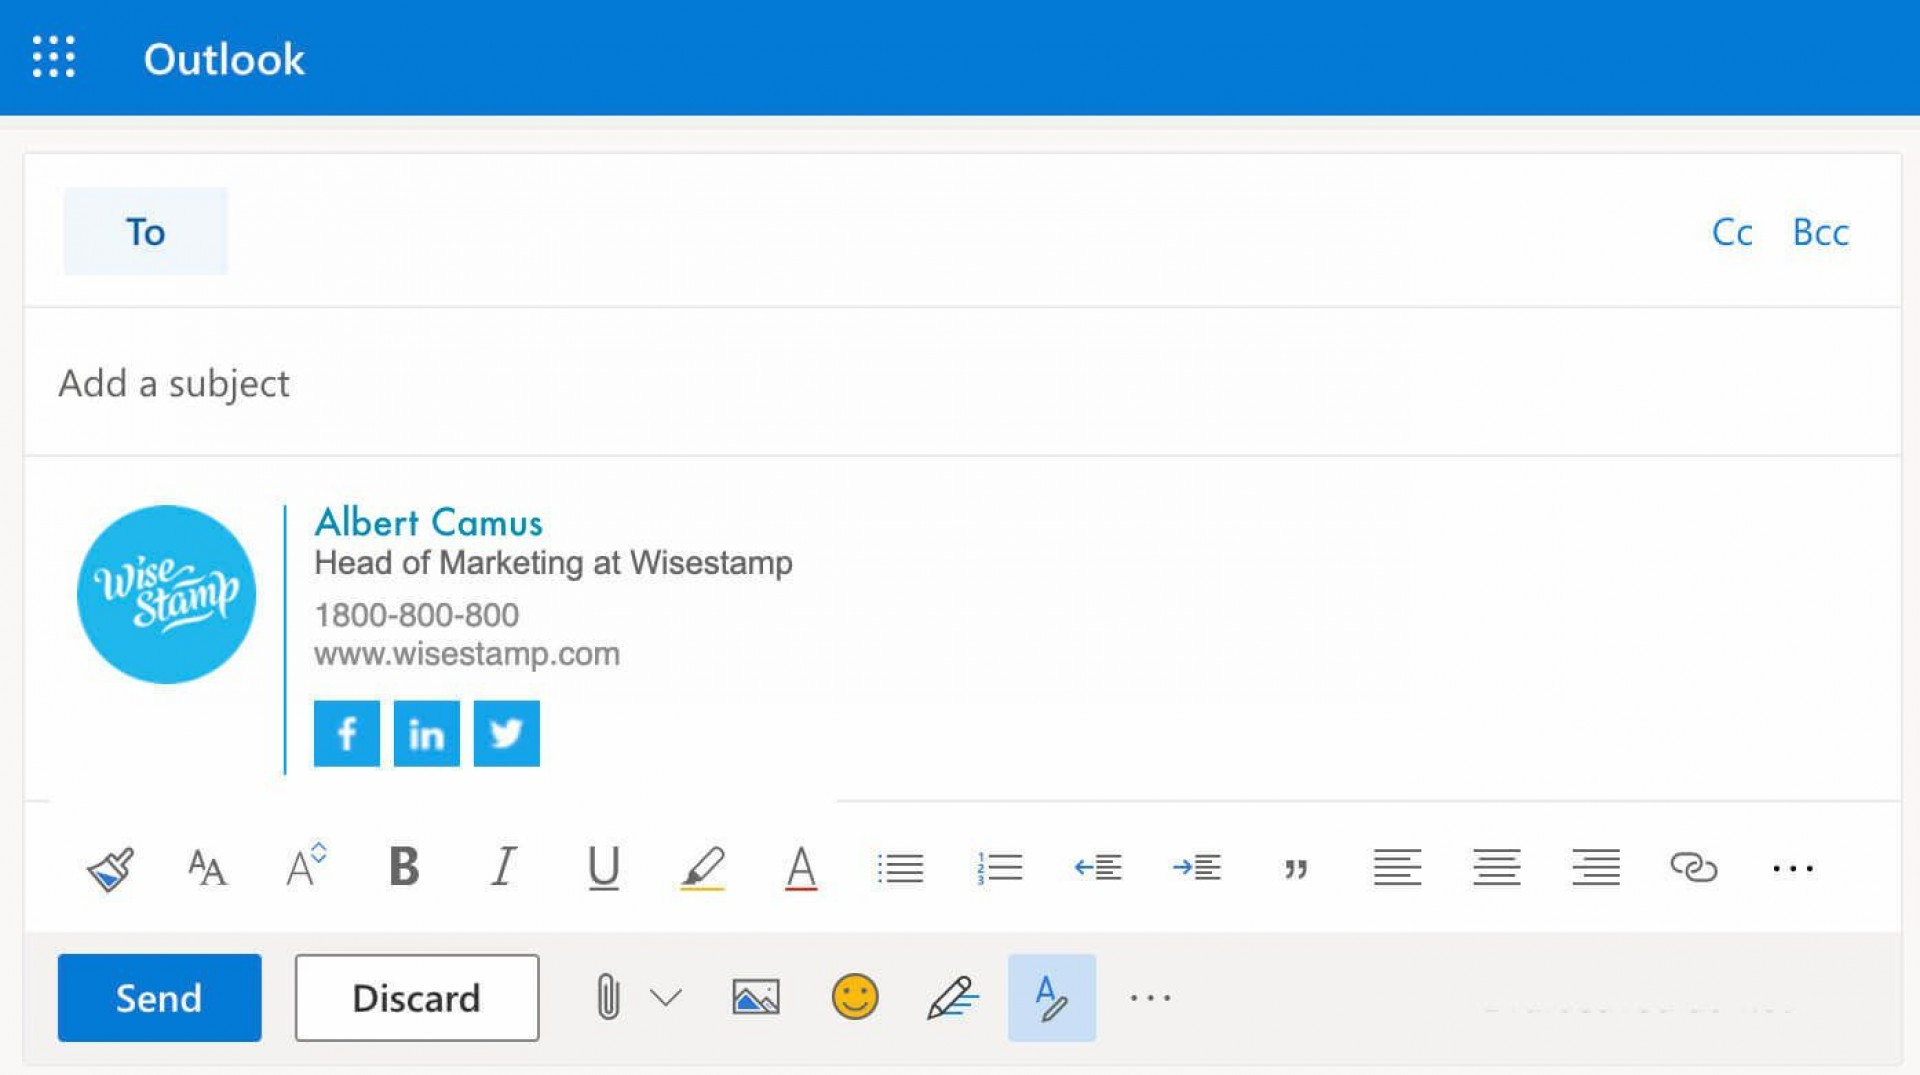 008 Surprising Outlook Email Signature Template Example Inspiration  Examples1920